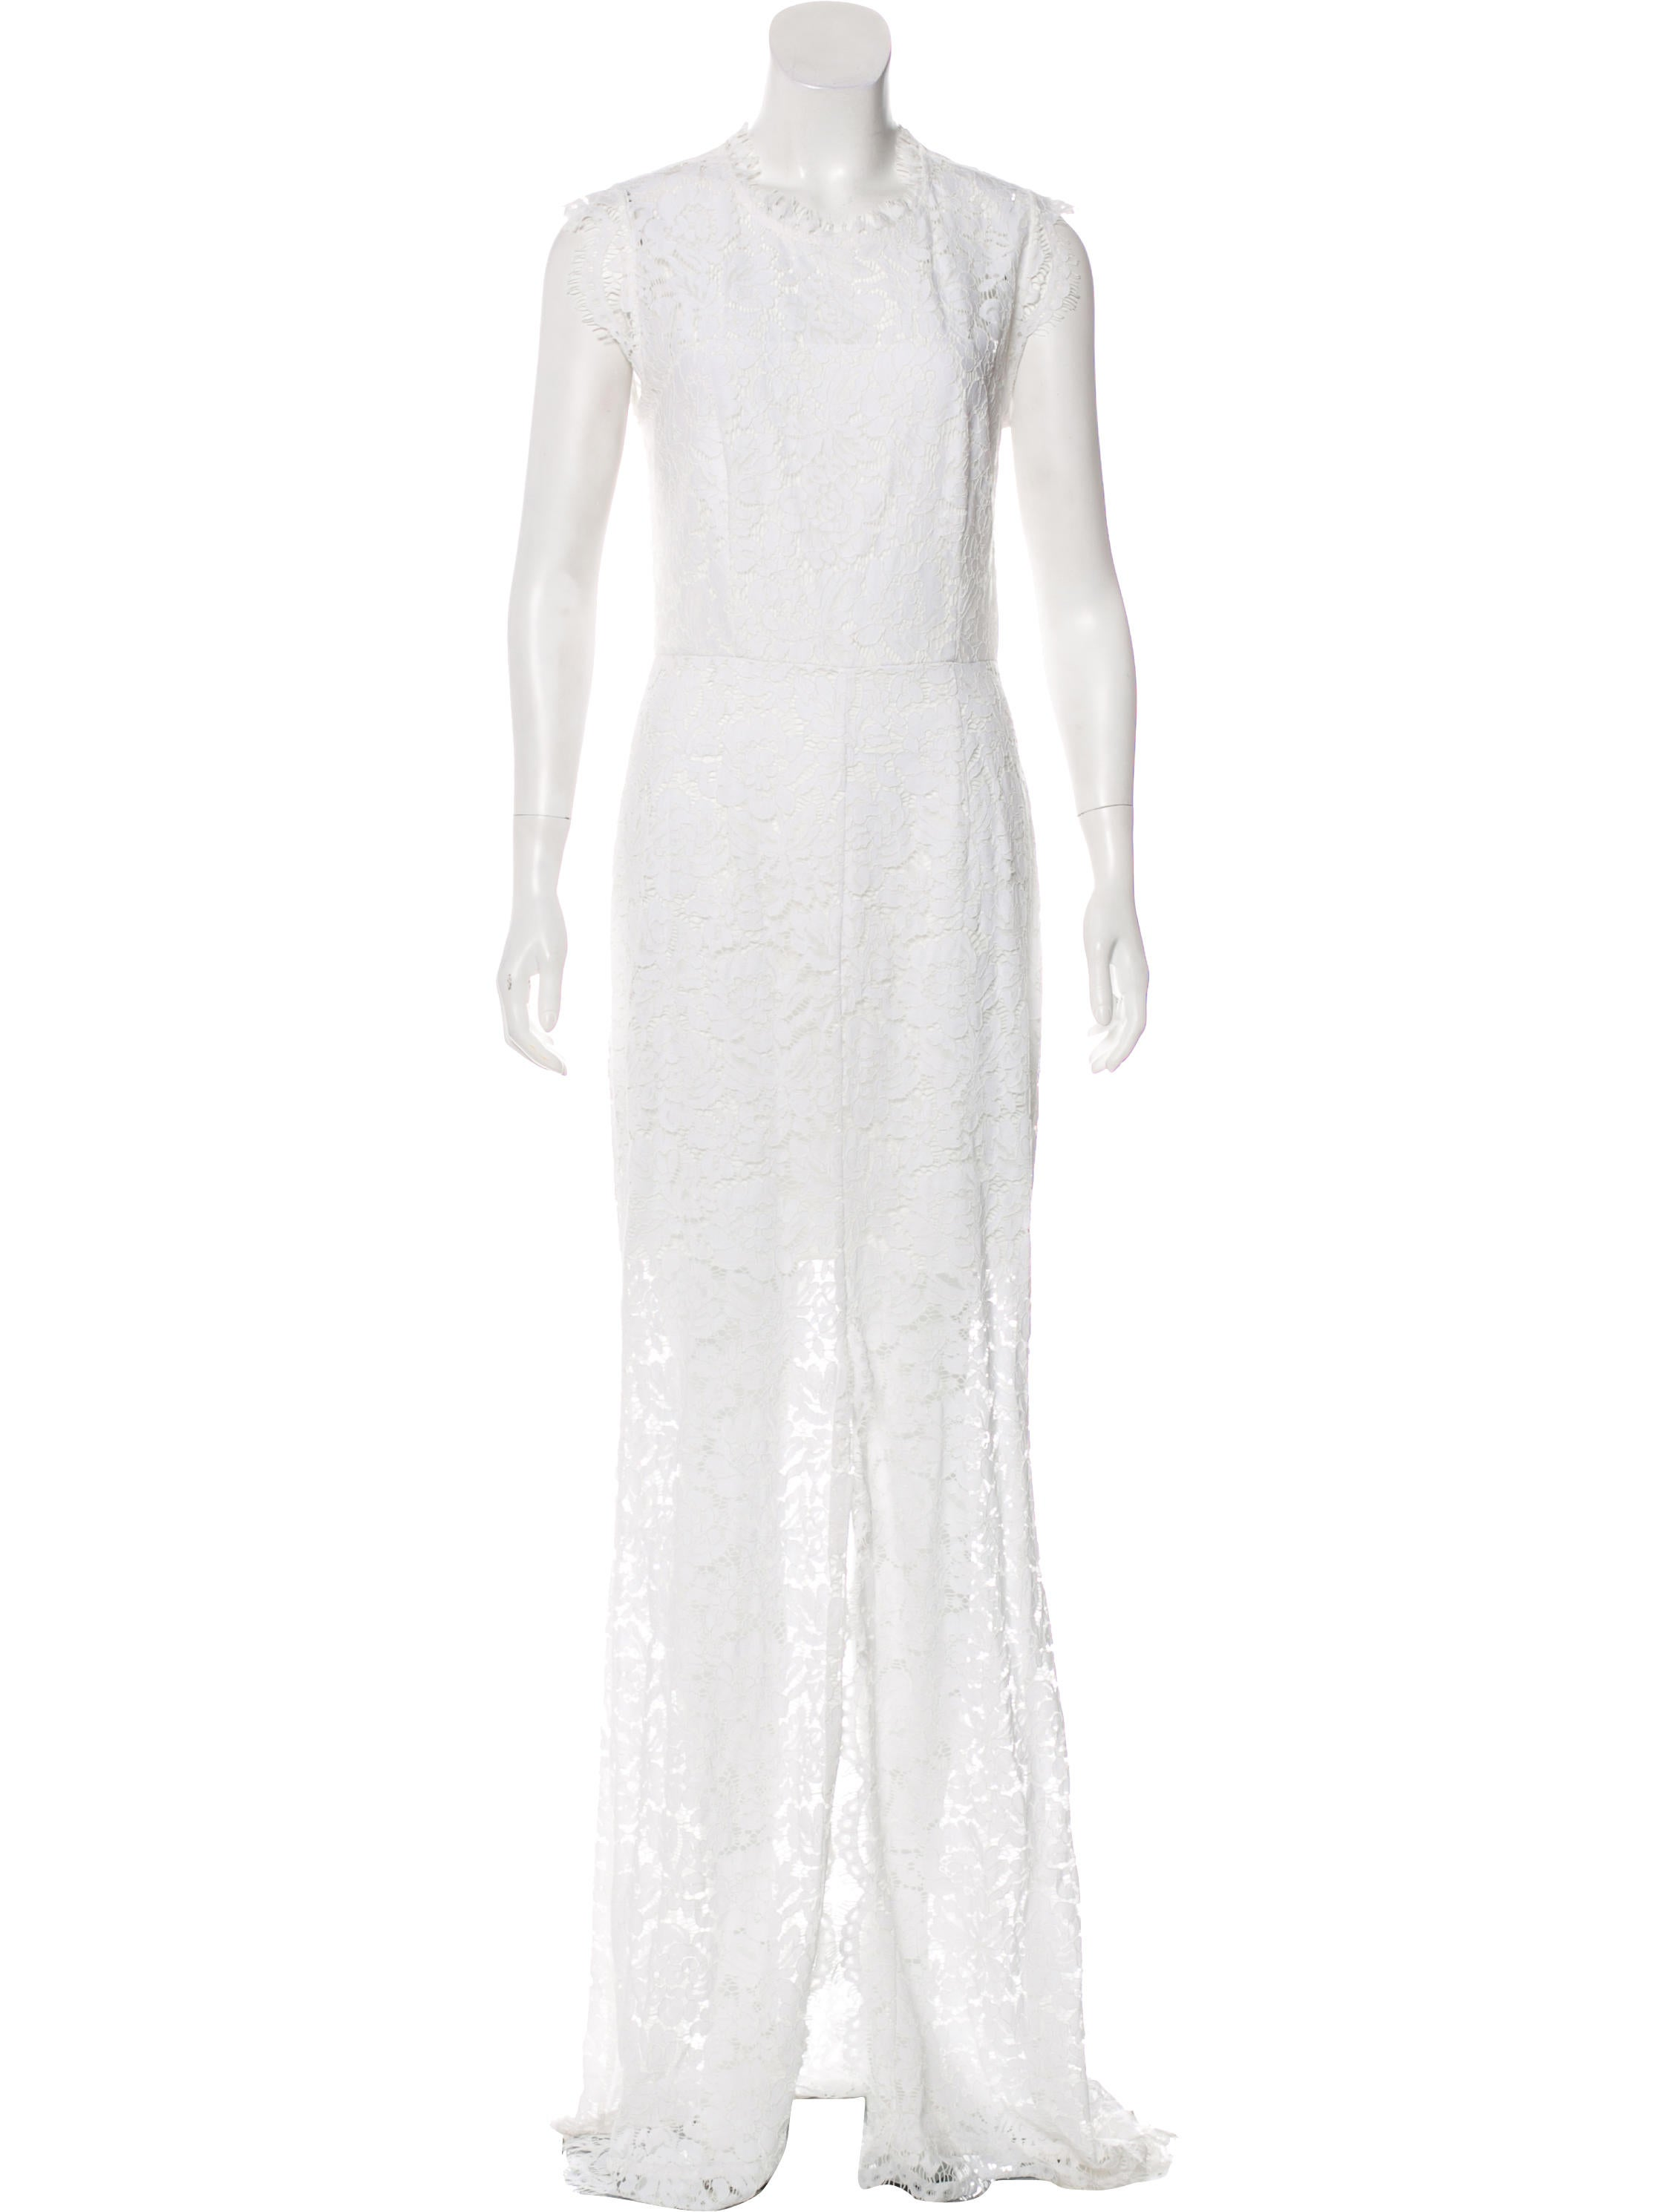 d5e92726505 Rachel Zoe Lace Maxi dress - Clothing - WRL35753